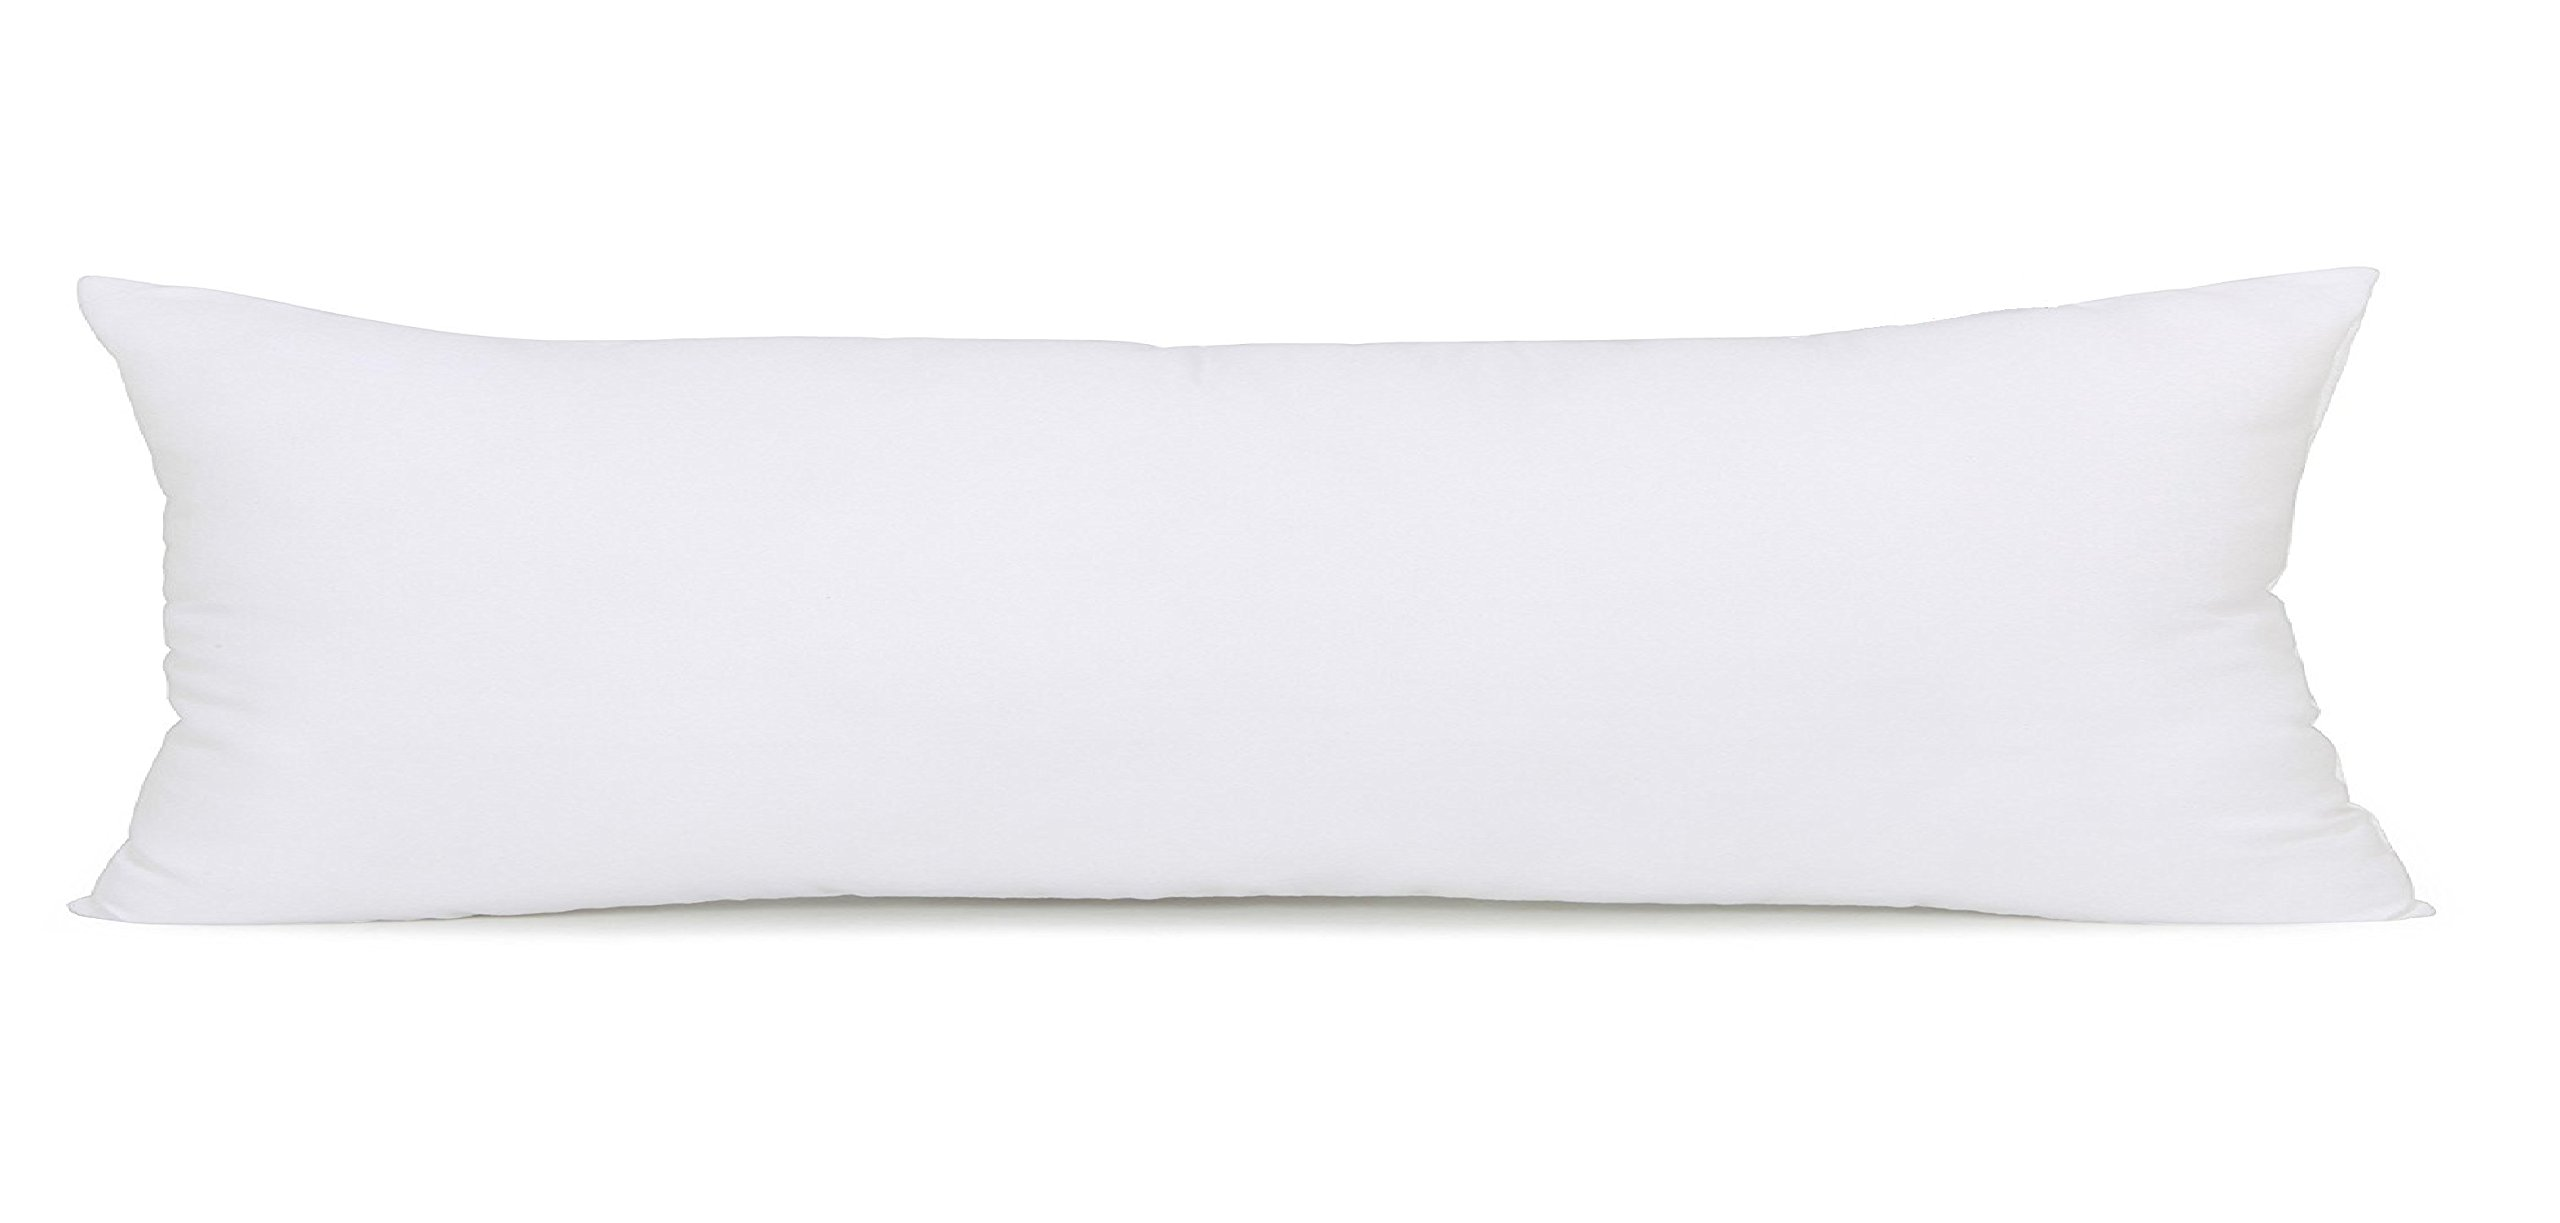 Acanva Hypoallergenic Ultra Soft Bed Body Pillow, 20'' L x 54'' W